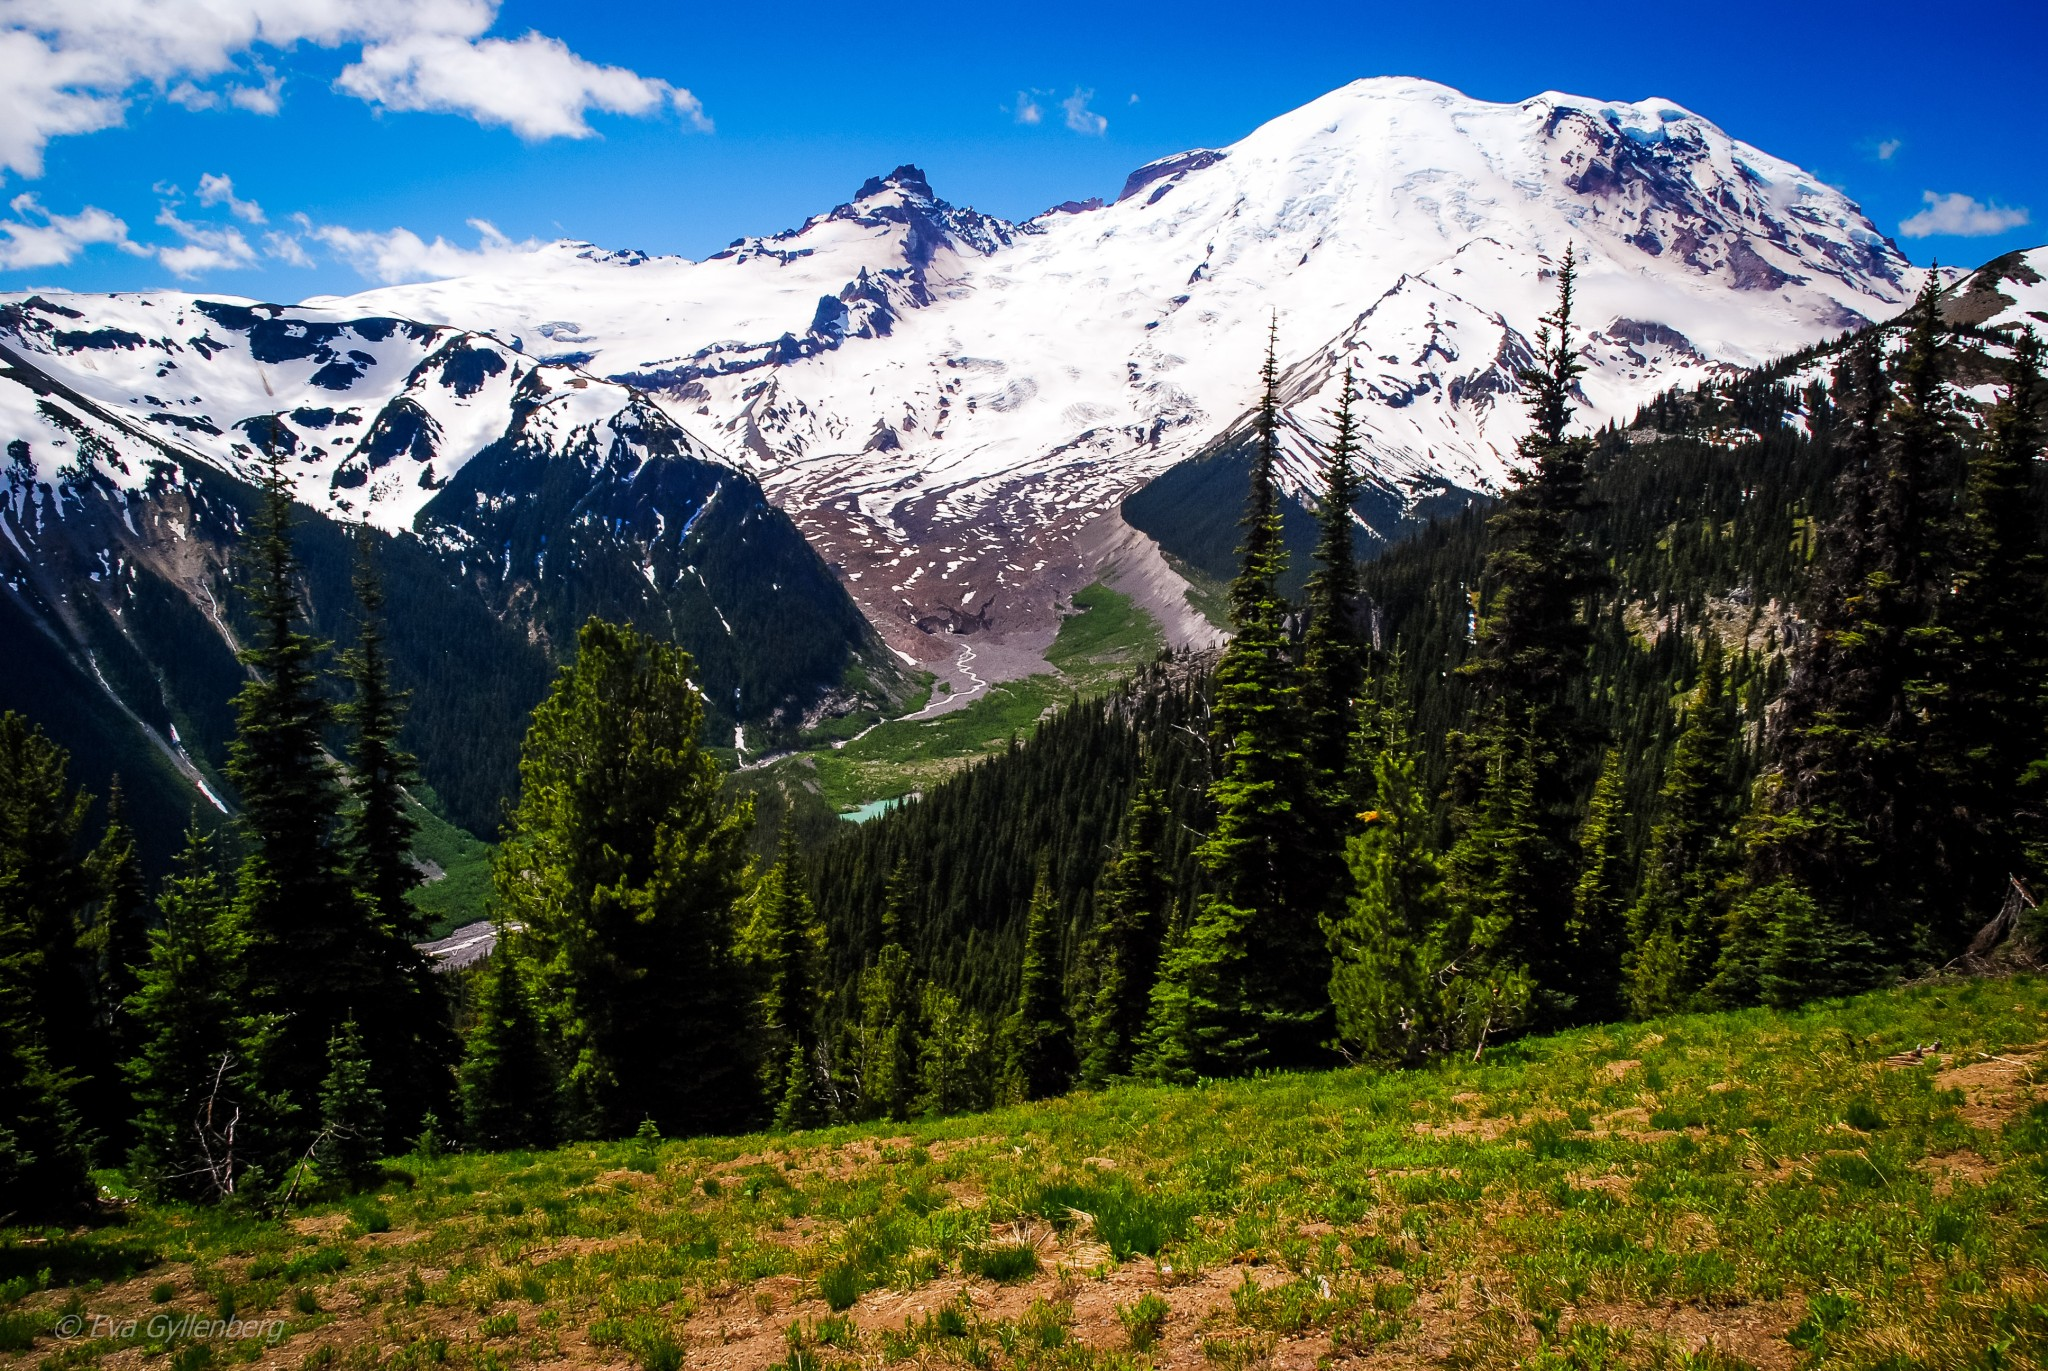 Storslagna vyer - Mount Rainier - Washington